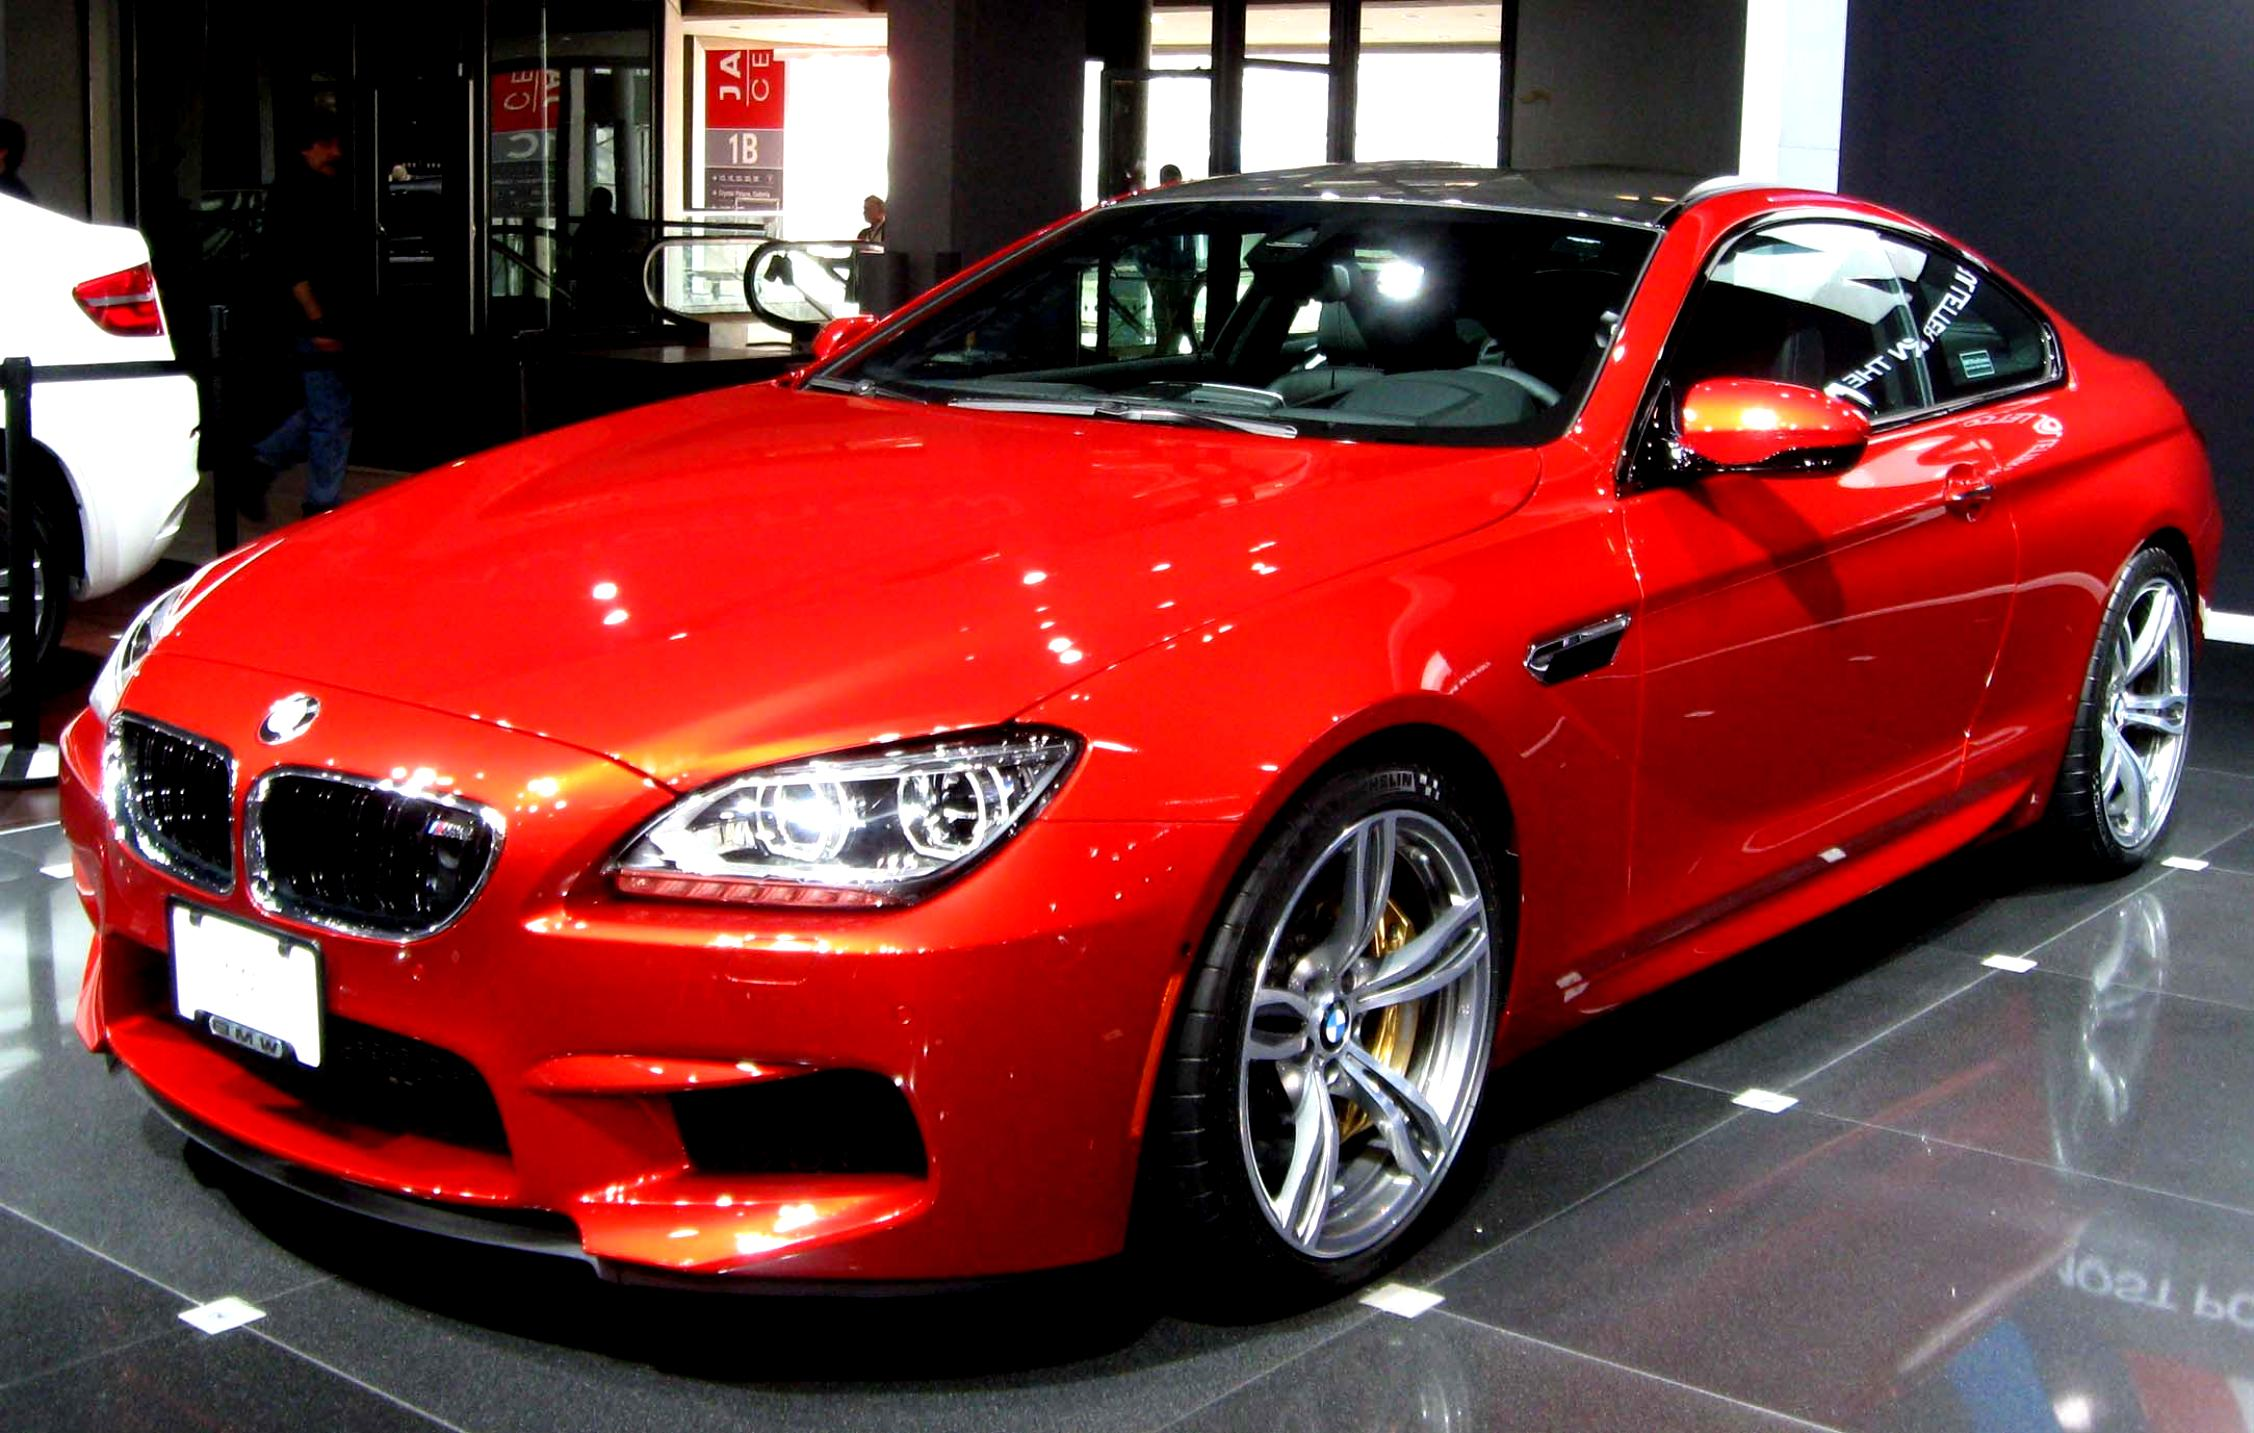 BMW M6 Coupe E63 2005 on MotoImg.com